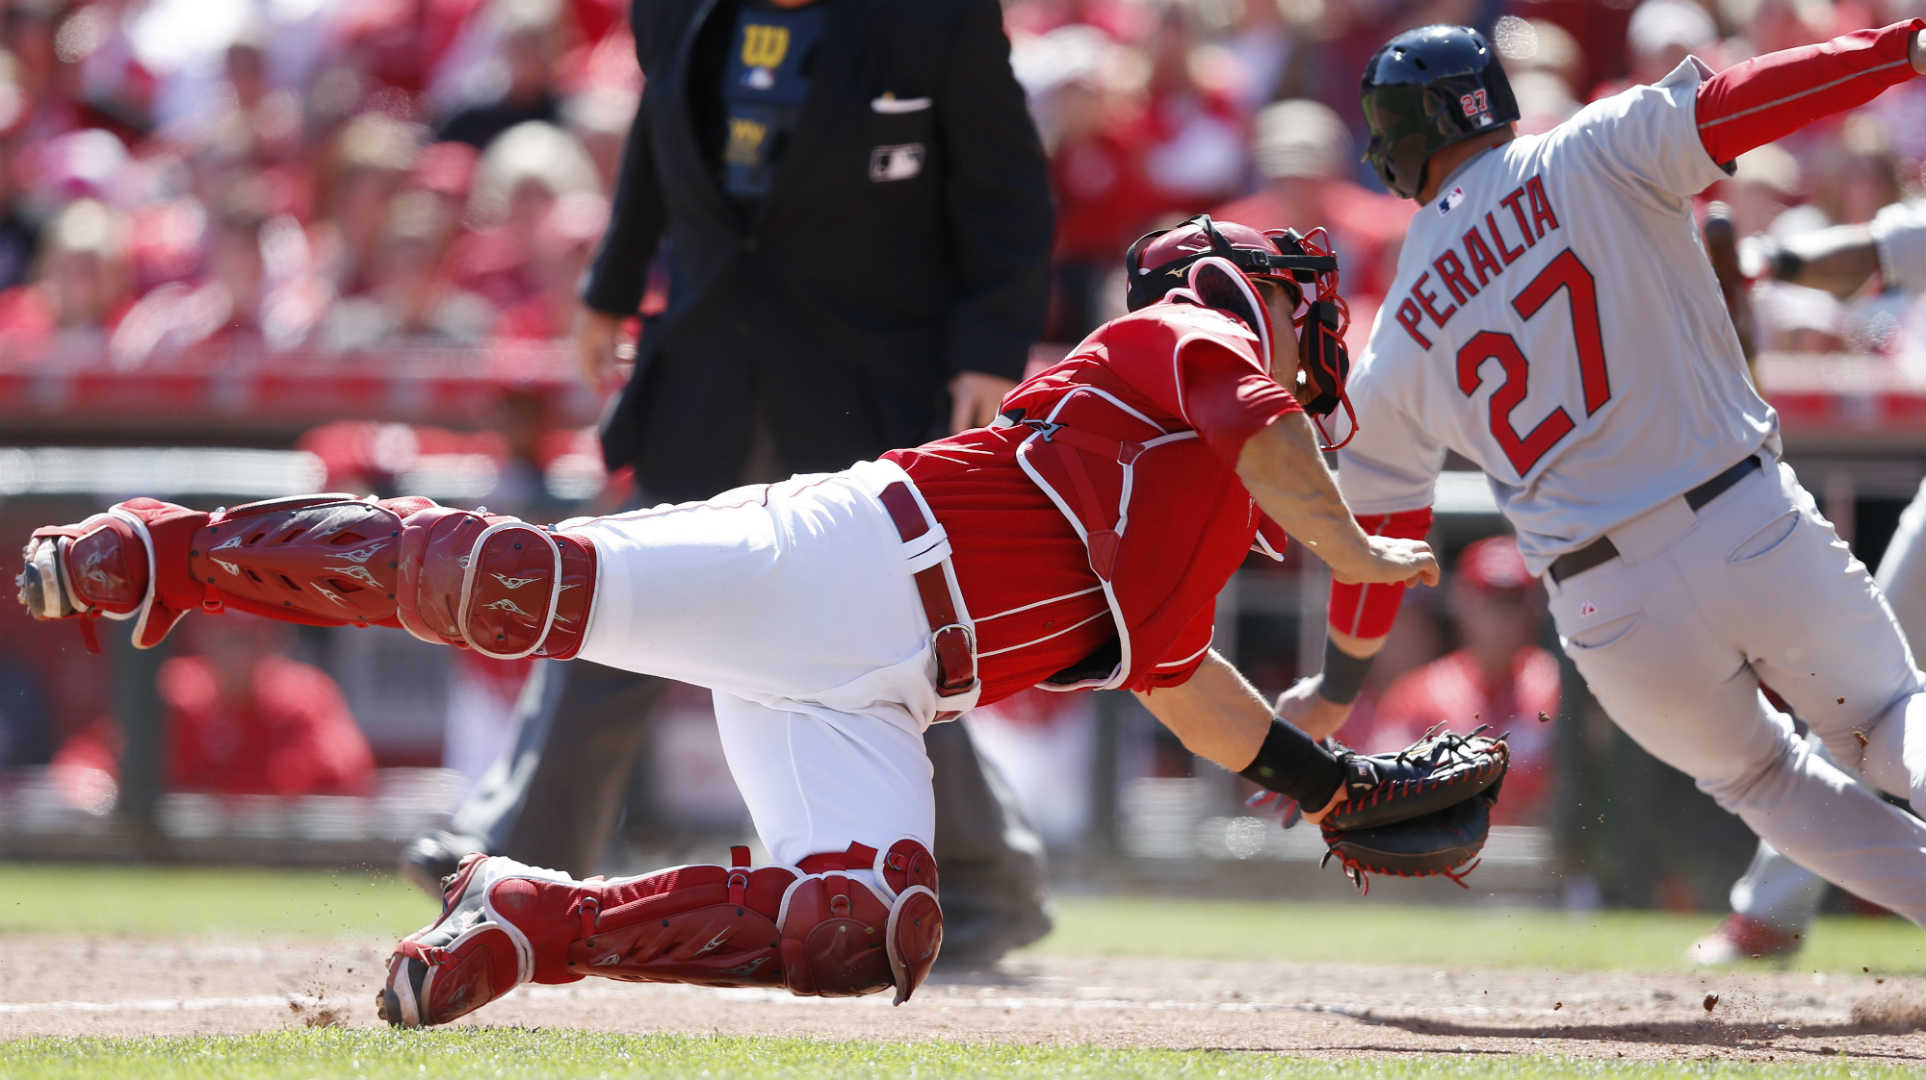 Reds finally place catcher Devin Mesoraco on DL